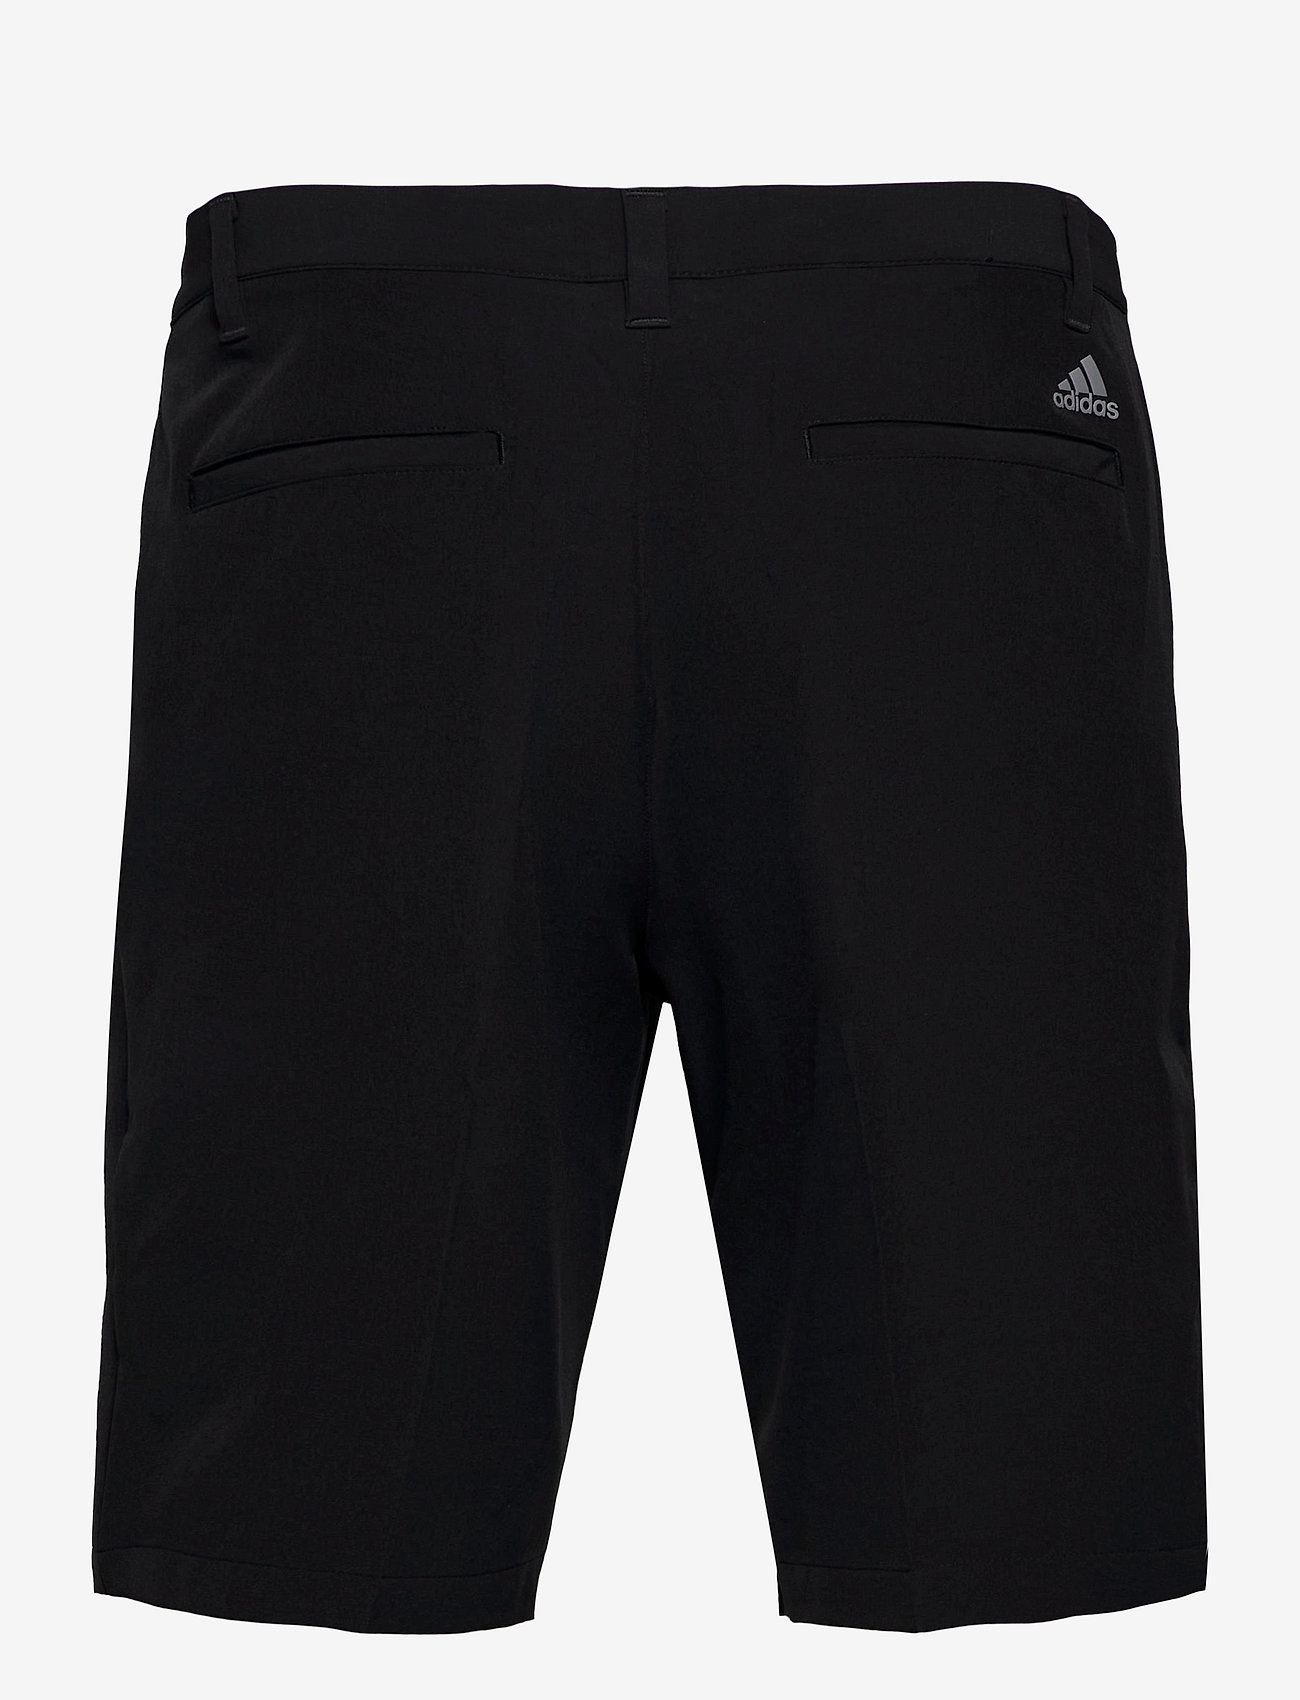 adidas Golf - ULT 365 SHORT - short de golf - black - 1